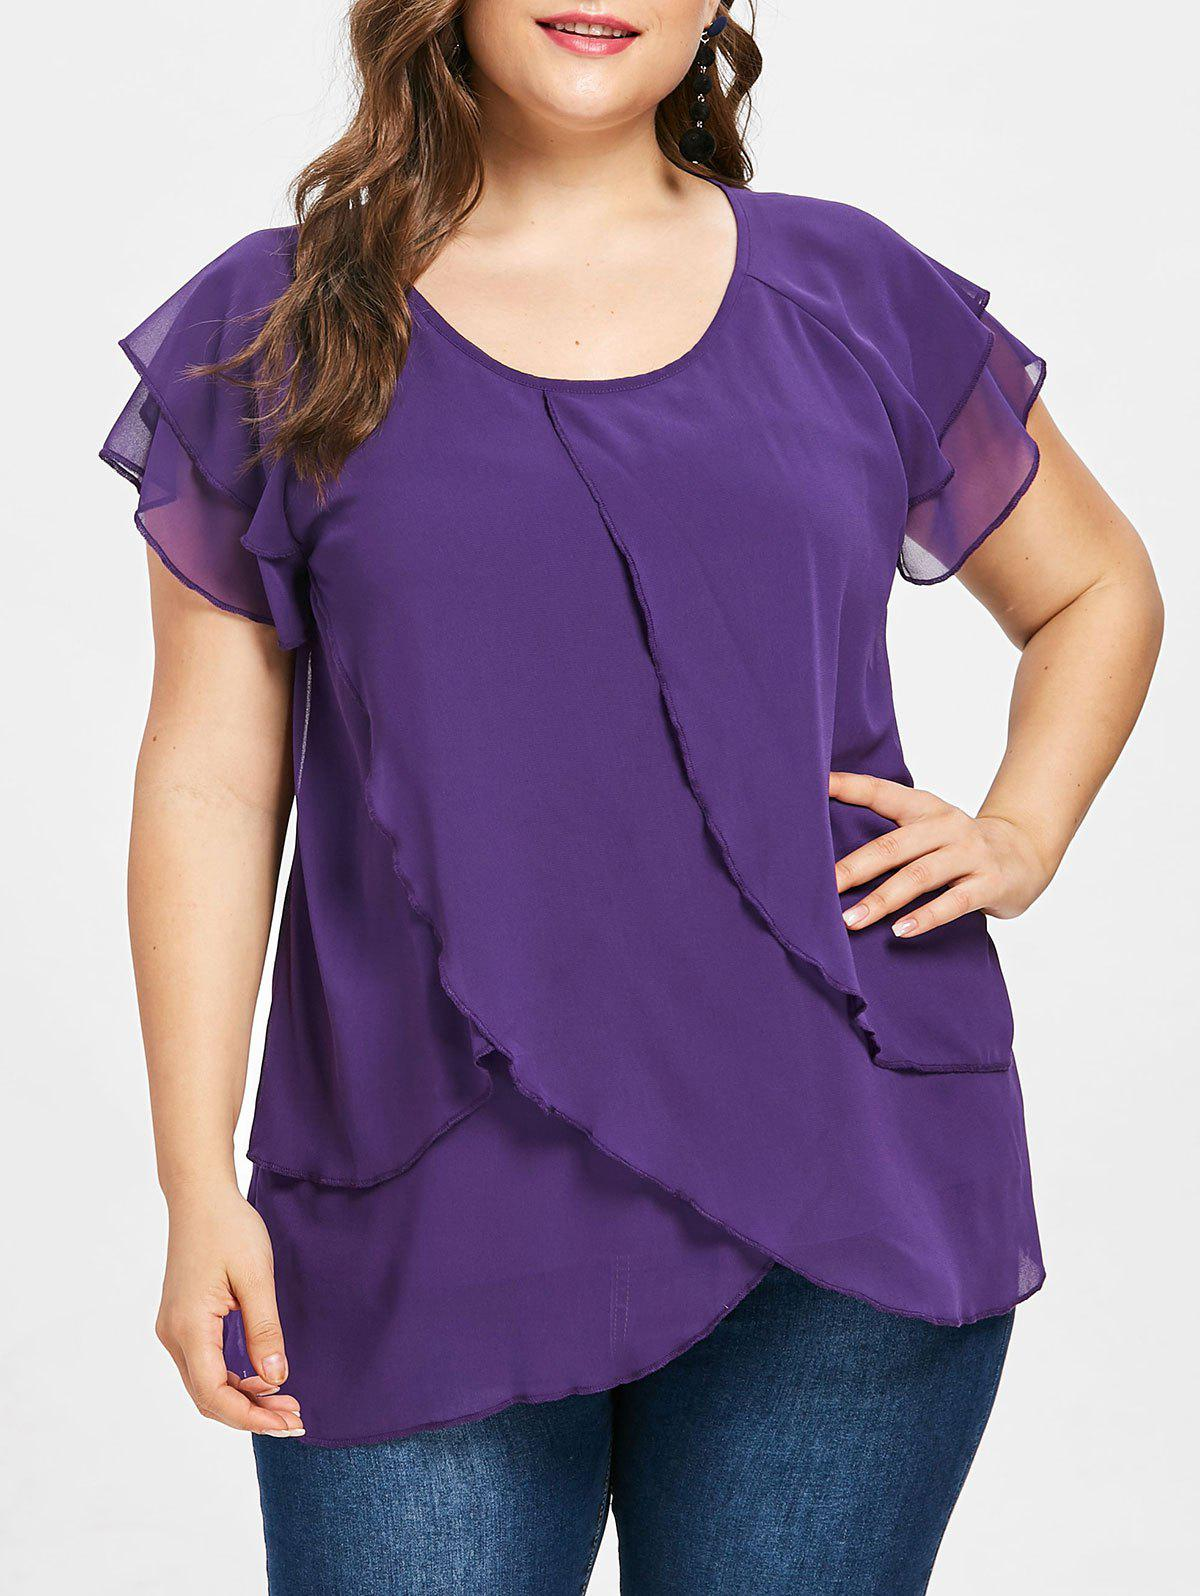 Plus Size Raglan Sleeve Tulip Blouse - PURPLE MONSTER 3X